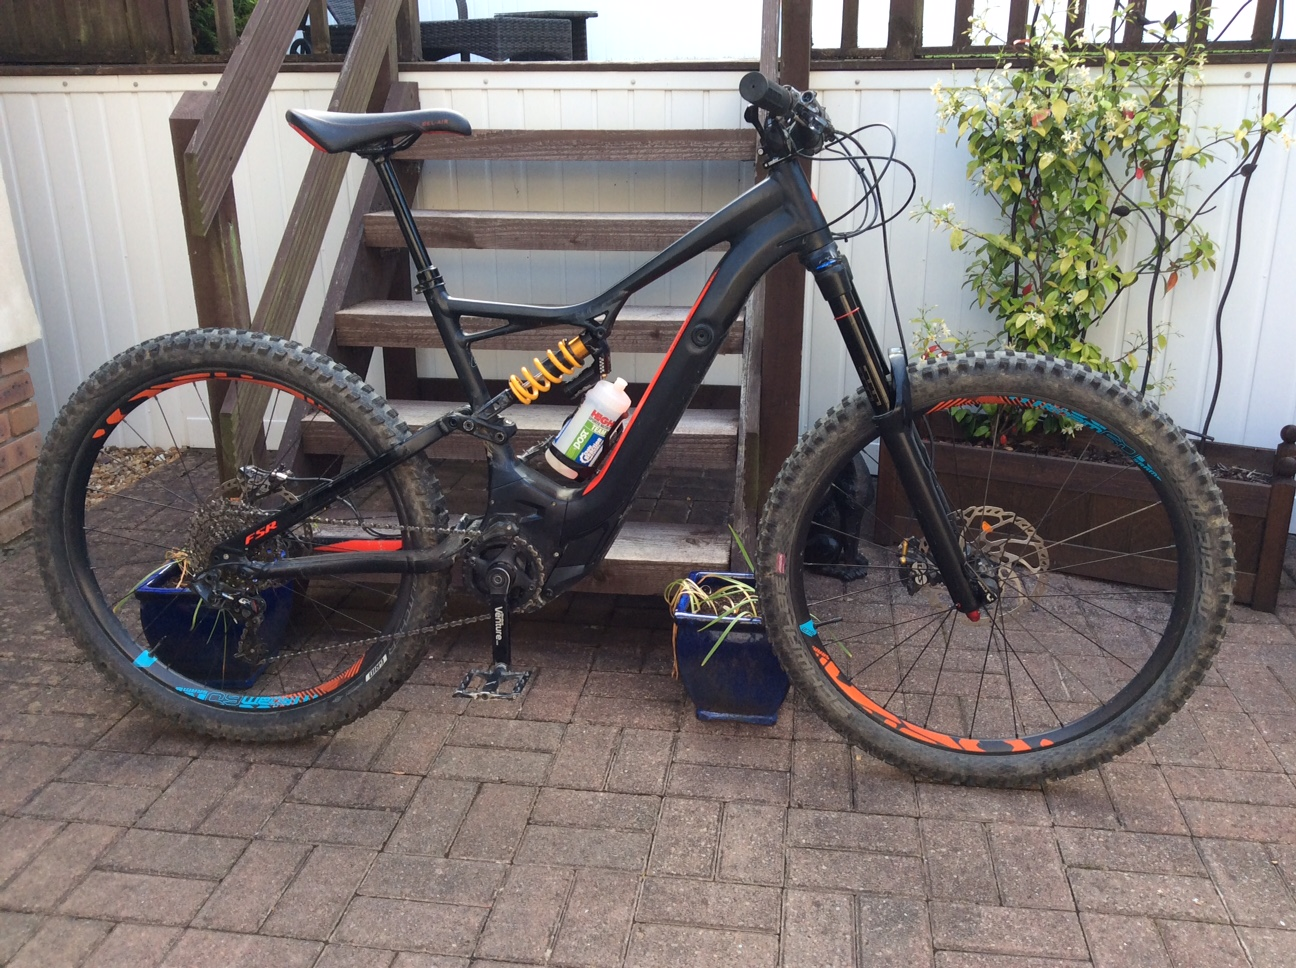 Levo - Fork / Shock customisations ? - EMTB Forums